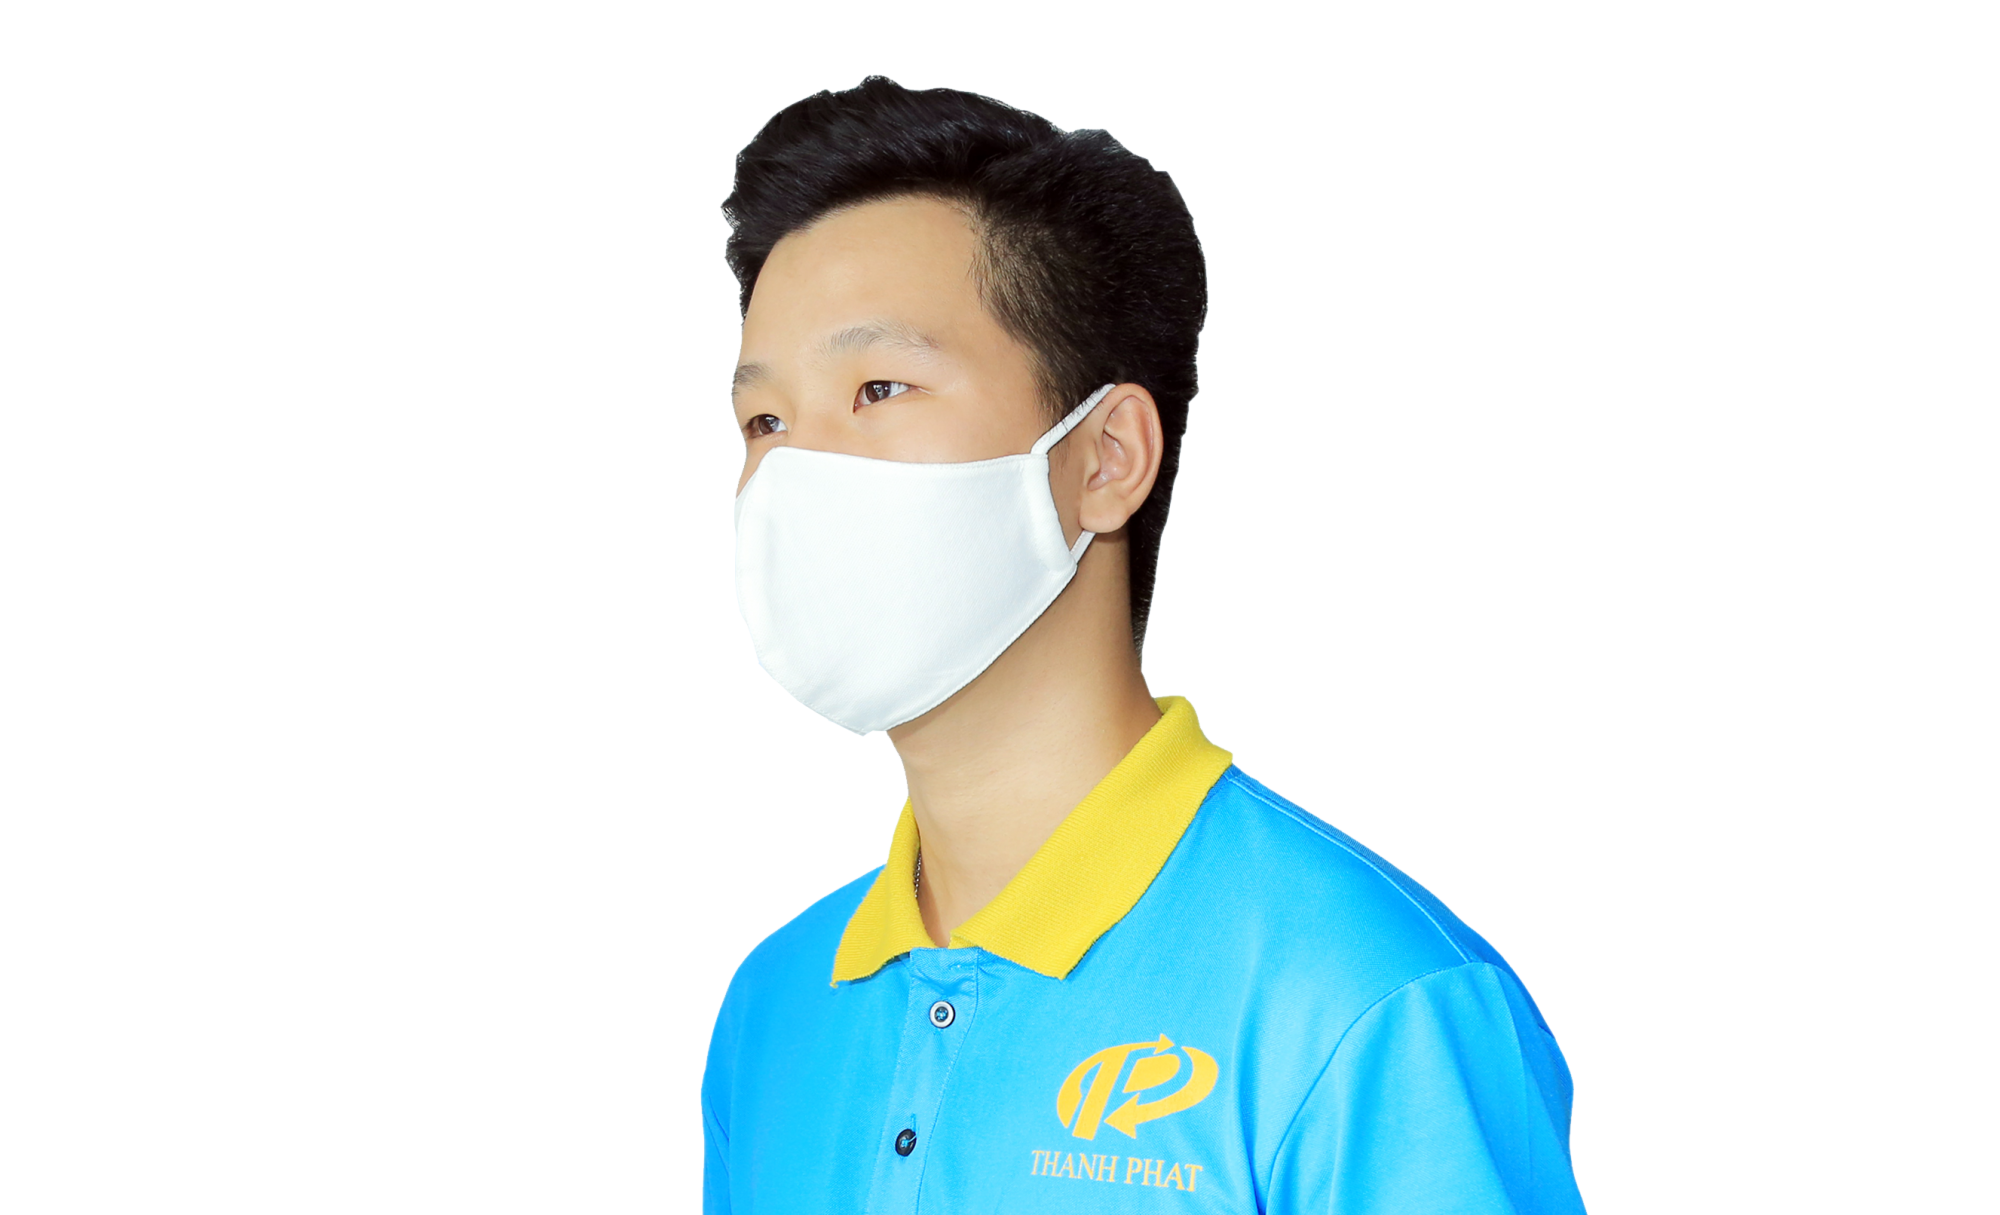 KHẨU TRANG VẢI KHÁNG KHUẨN HELLO MASK - TIỆT TRÙNG